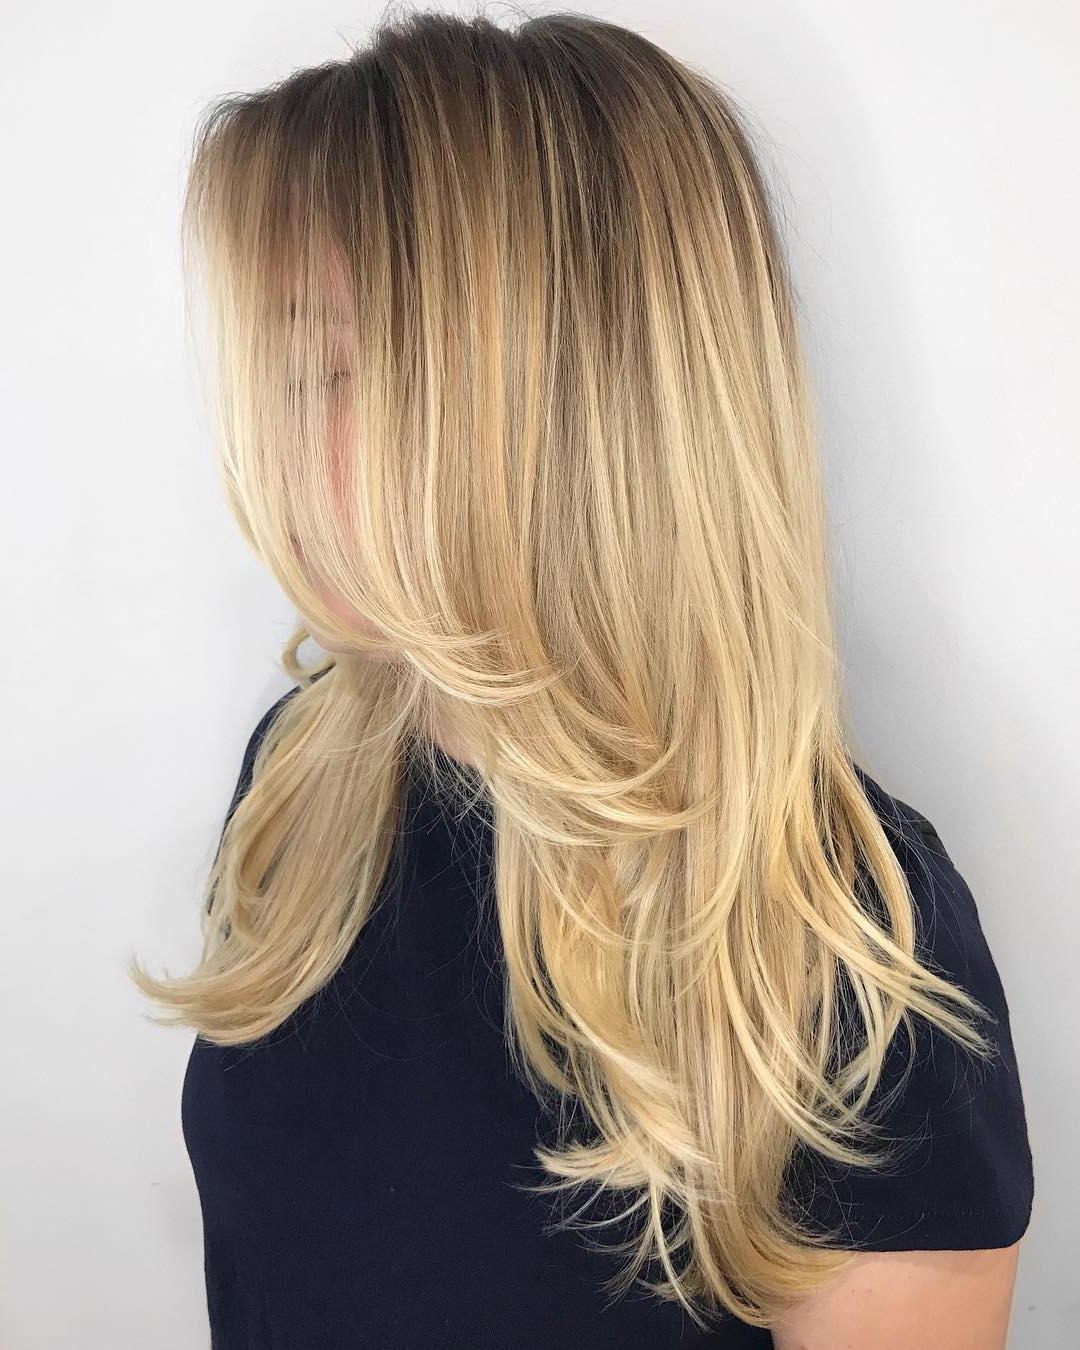 How To Nail Layered Hair In 2019: Full Guide To Lengths And Throughout Most Recent Chic Flipping Layers Long Shag Haircuts (View 5 of 20)